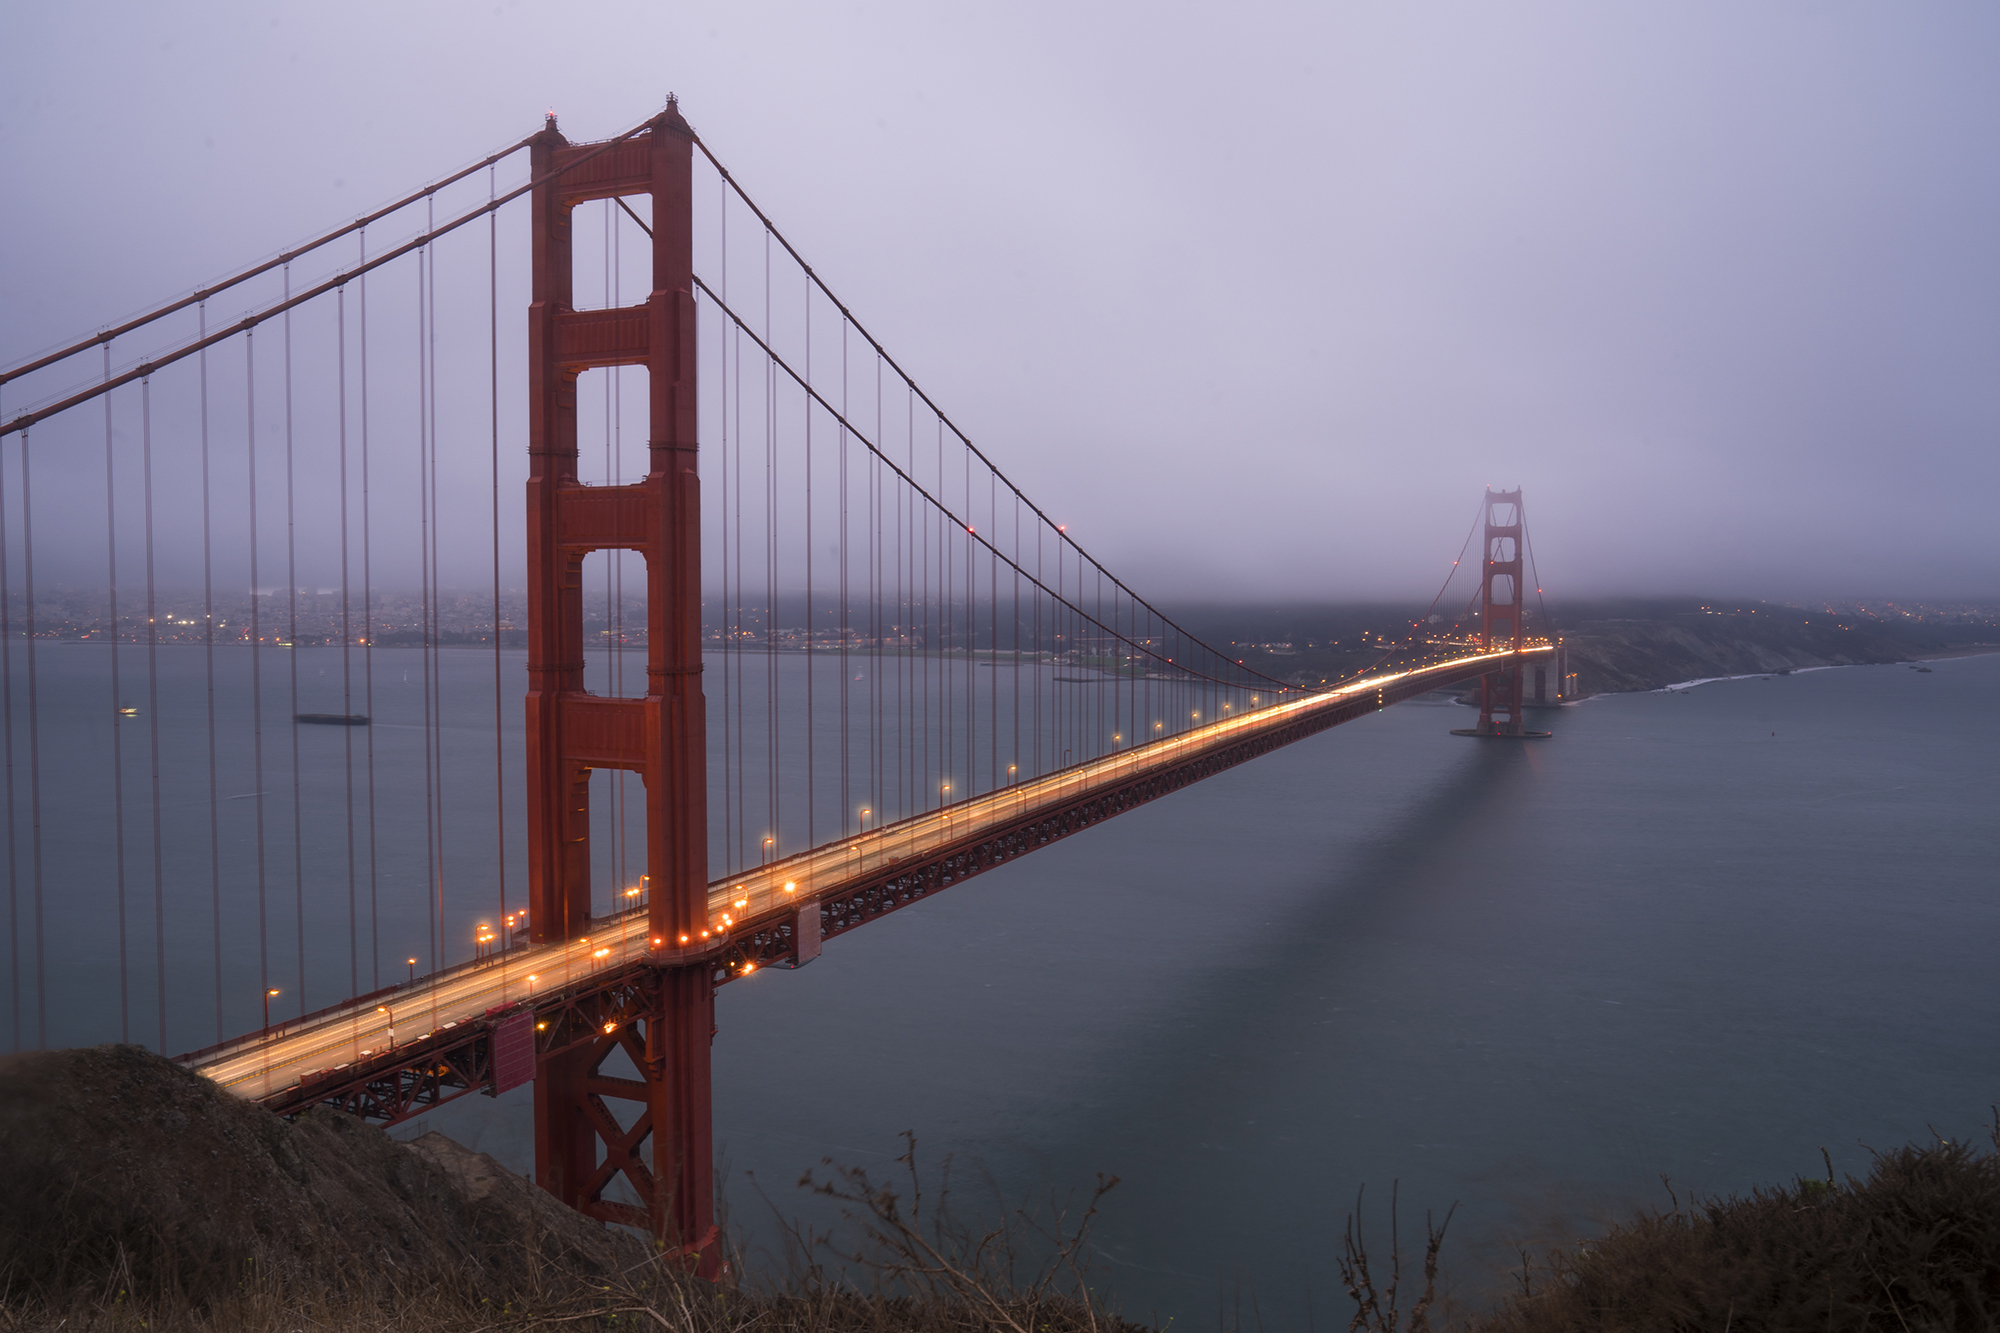 a view of the golden gate bridge during a foggy day in san francisco for dirt road travels